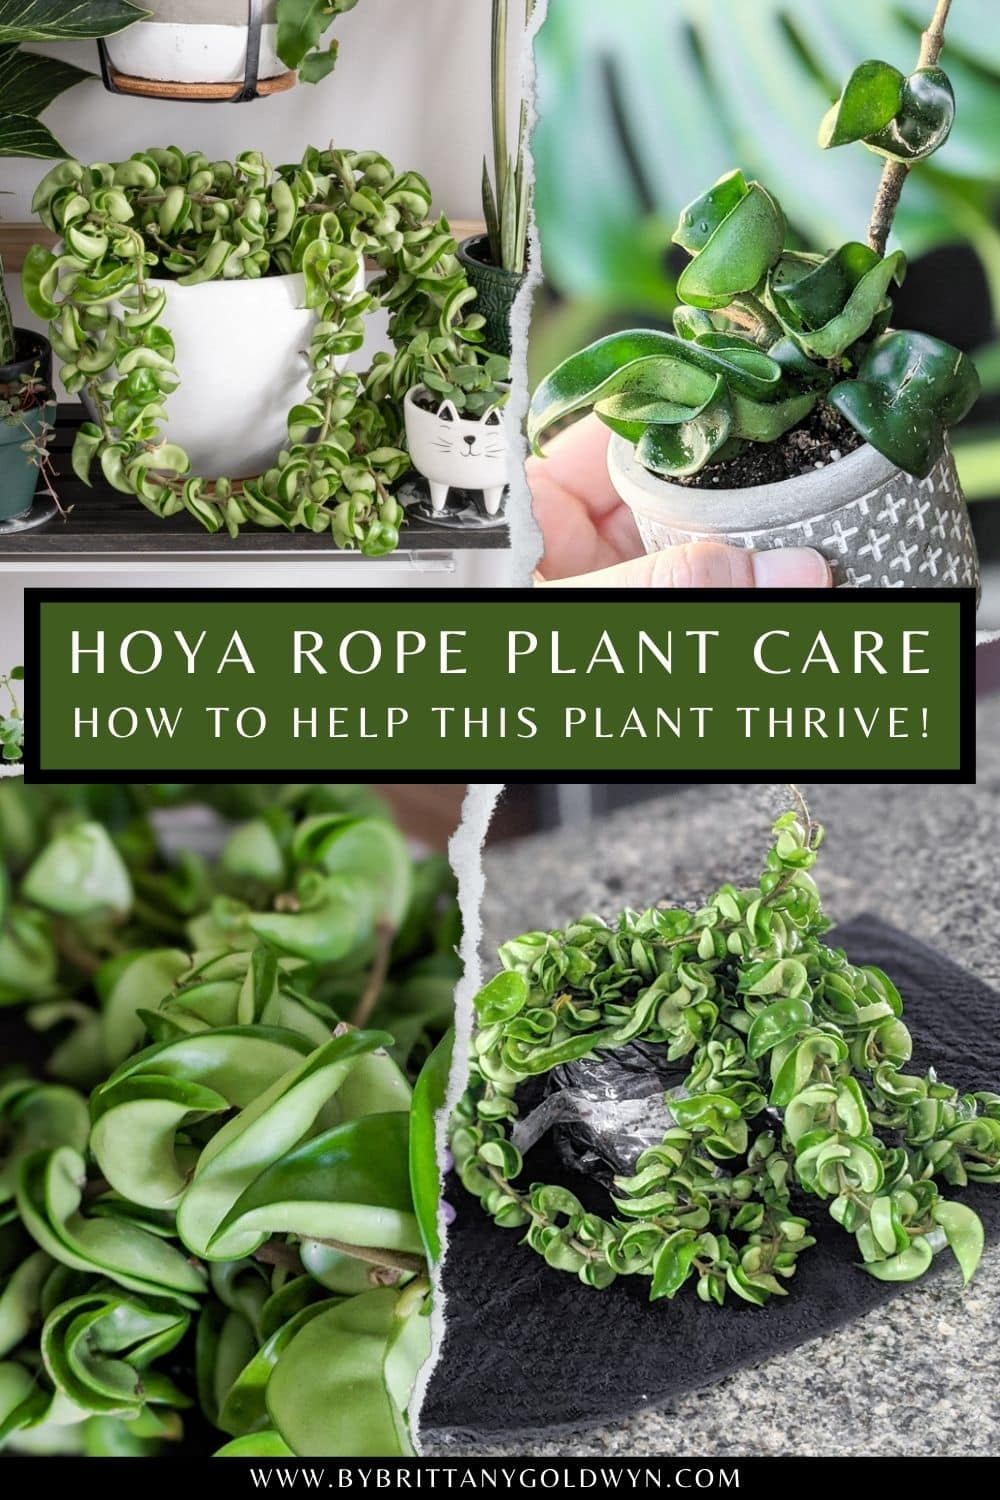 pinnable graphic with pictures of a hoya carnosa compacta plant and text overlay about how to care for the hoya rope plant